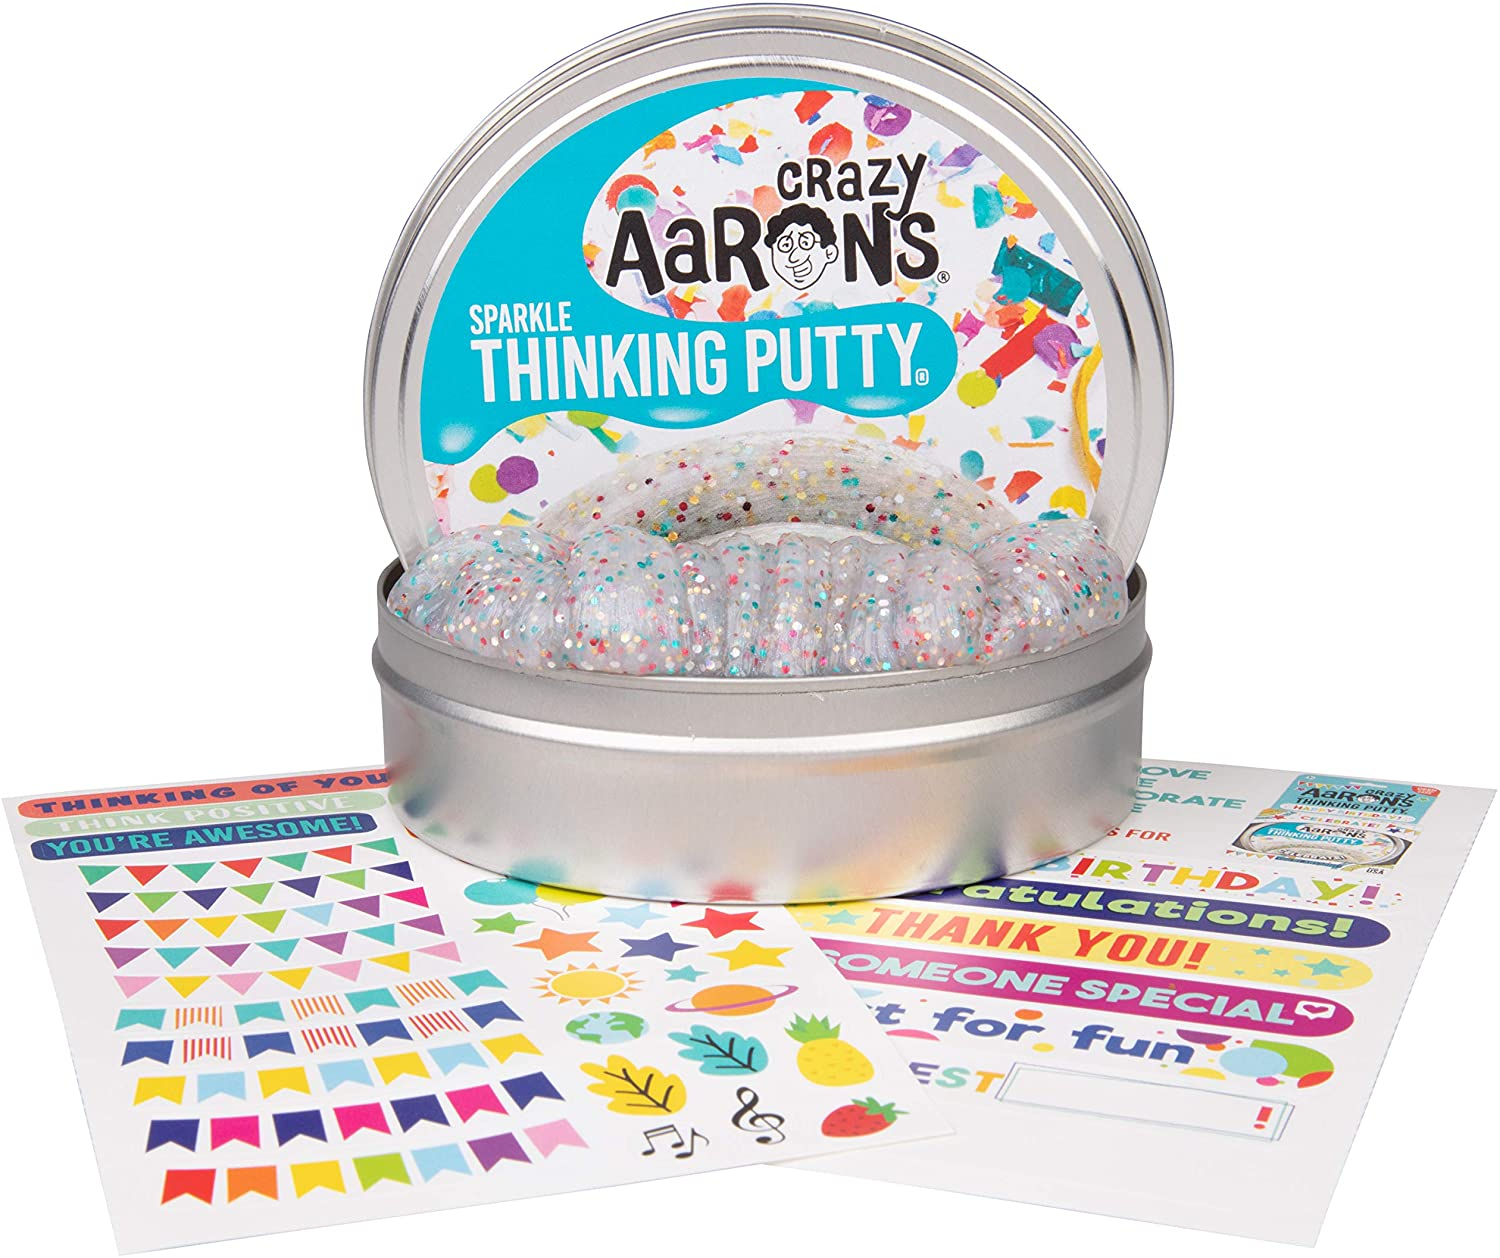 """Crazy Aaron's Thinking Putty 4"""" Tin Gift Set - Celebrate! Glitter in Clear Putty, Includes Customizable Greeting Card and Stickers - Soft Texture, Non-Toxic, Never Dries Out"""